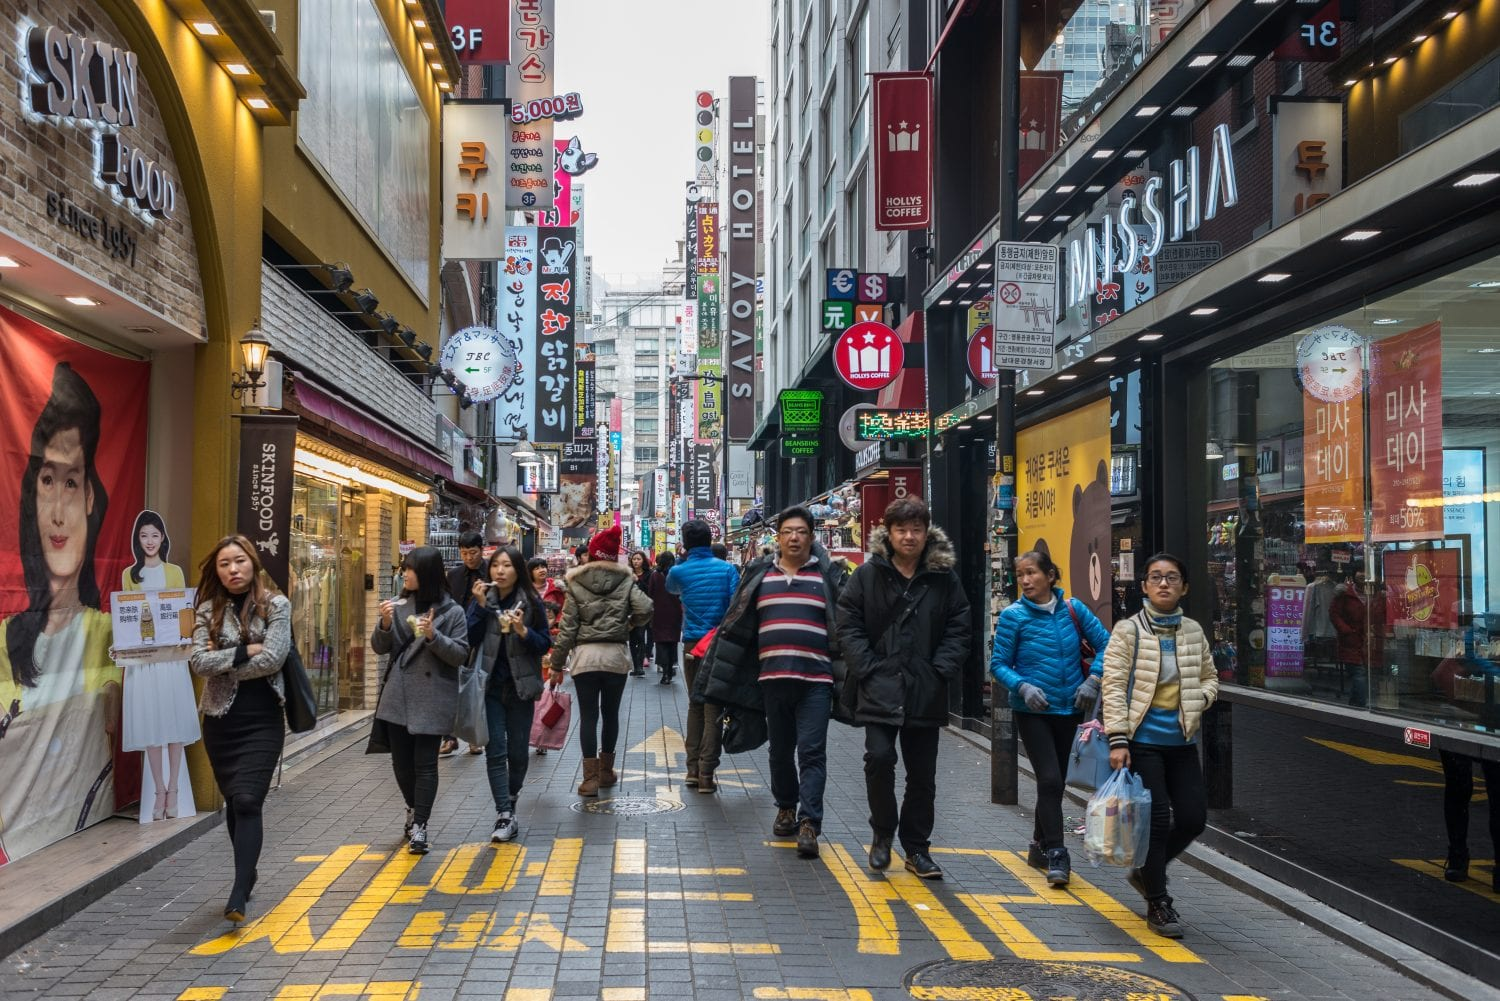 It is safer to walk the streets of Seoul late at night (even in an intoxicated state) than almost any Western city.